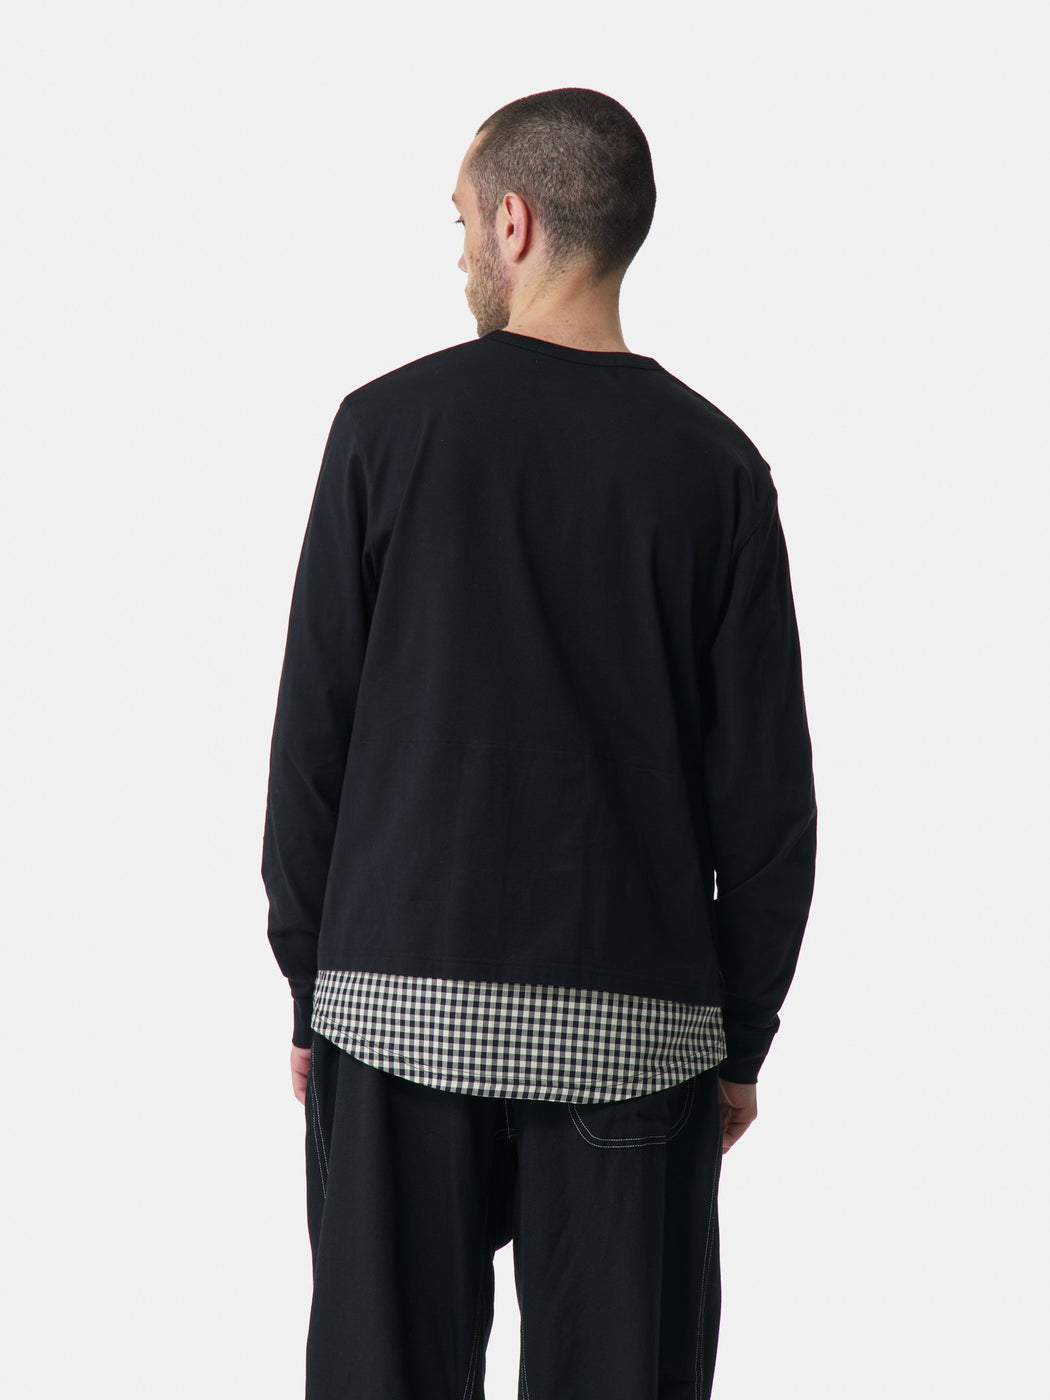 ALOYE Shirt Fabrics Long Sleeve Layerd T-shirt Black